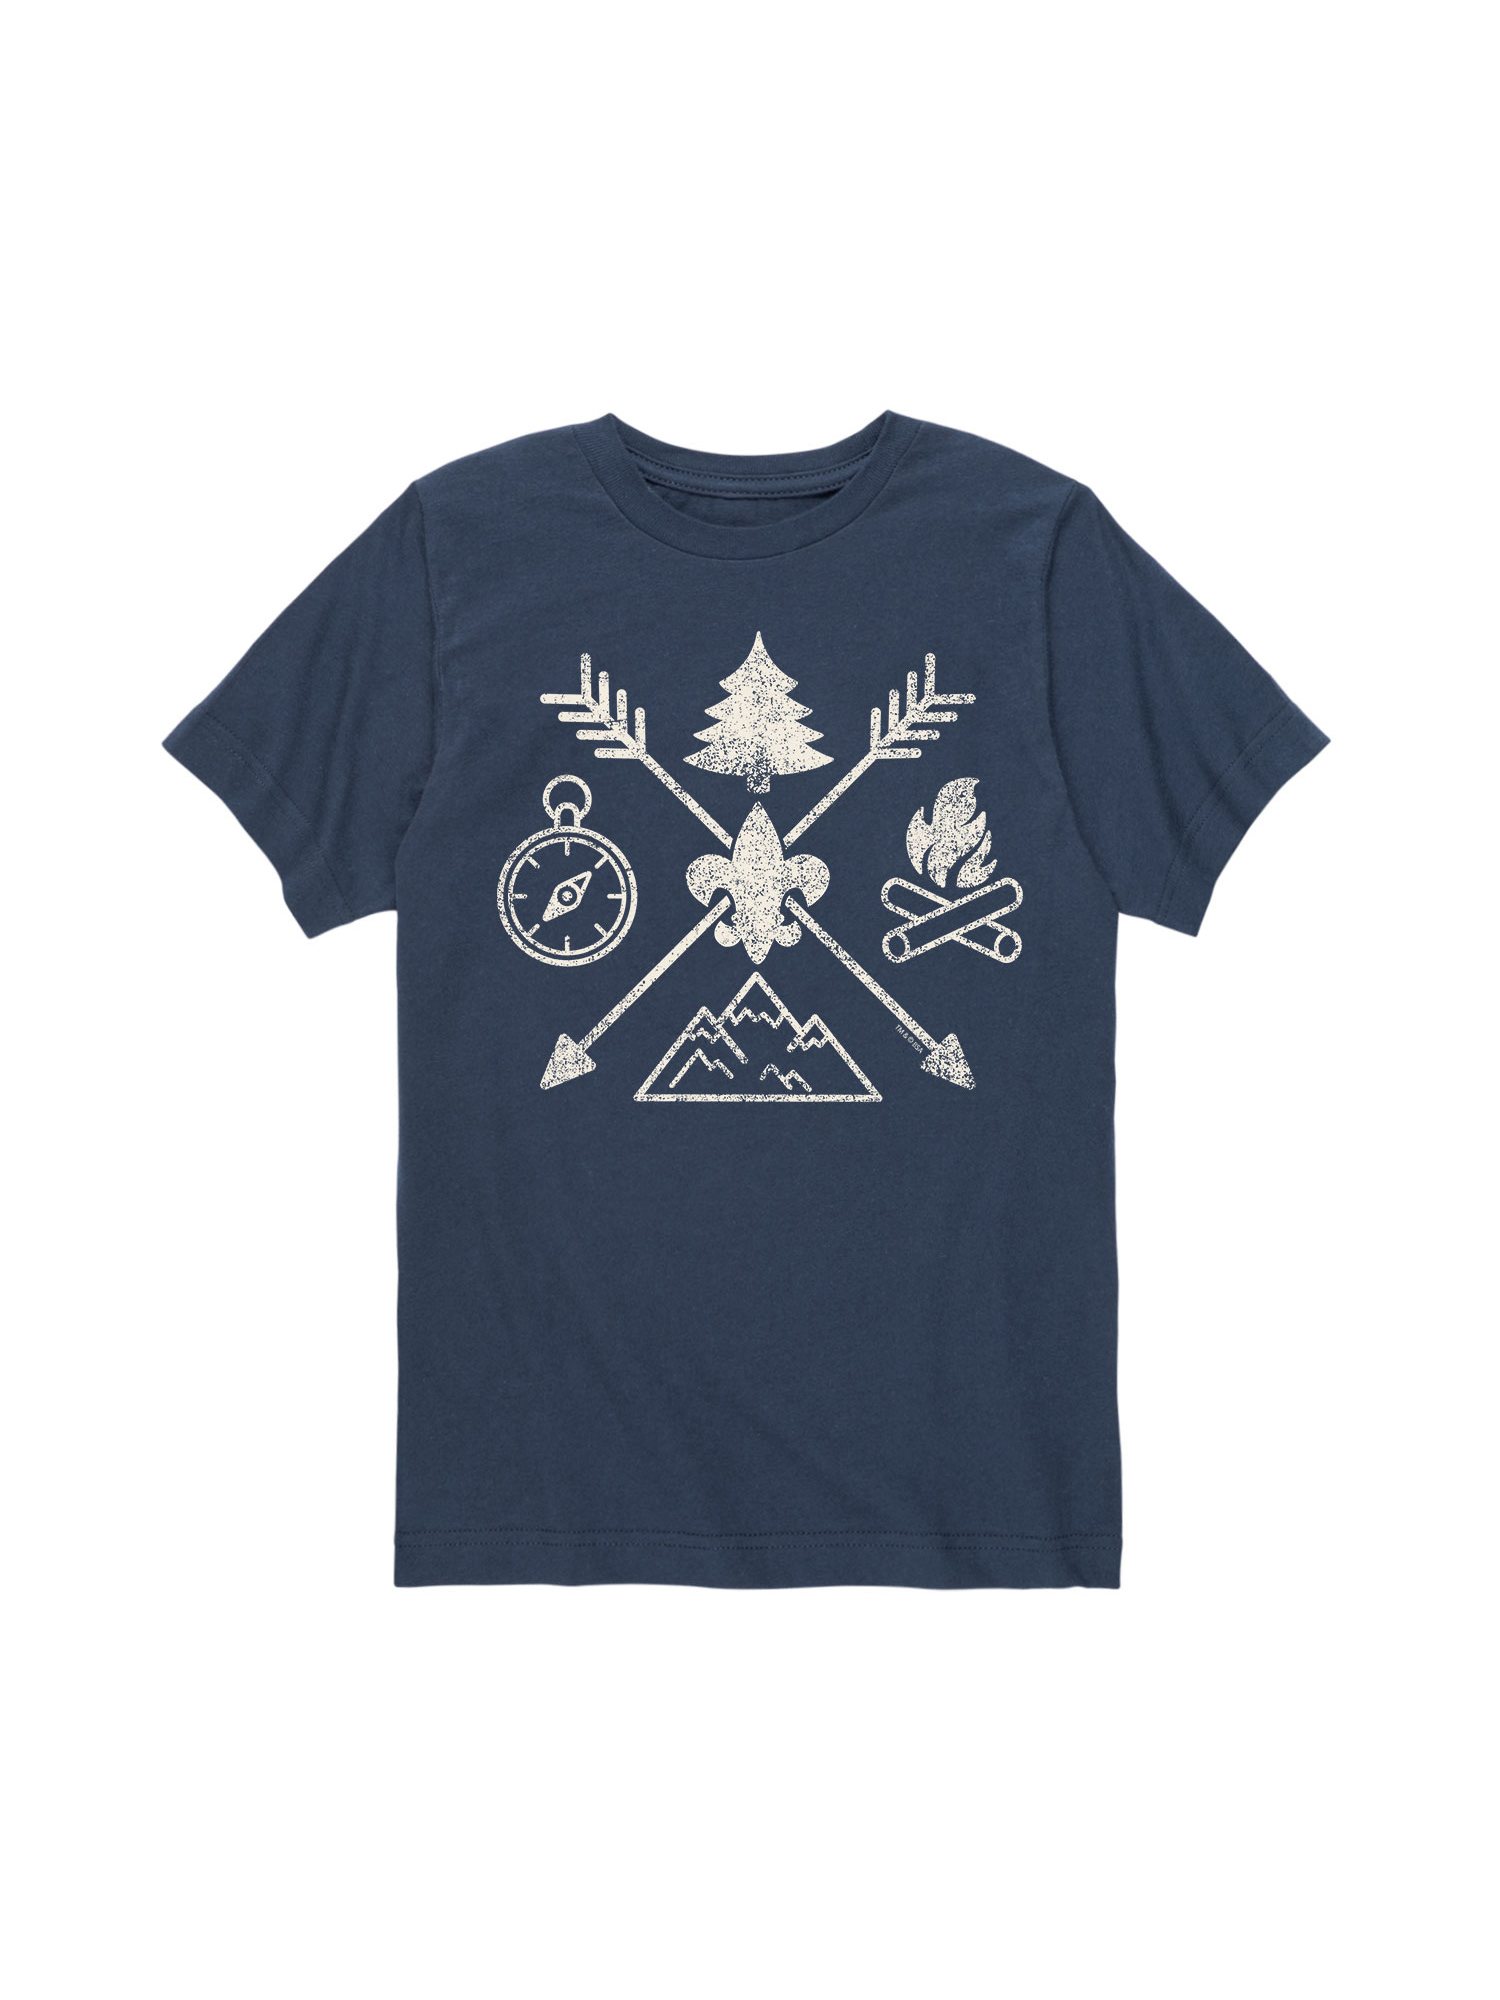 Boy Scouts of America Camp Symbols - Toddler Short Sleeve Tee